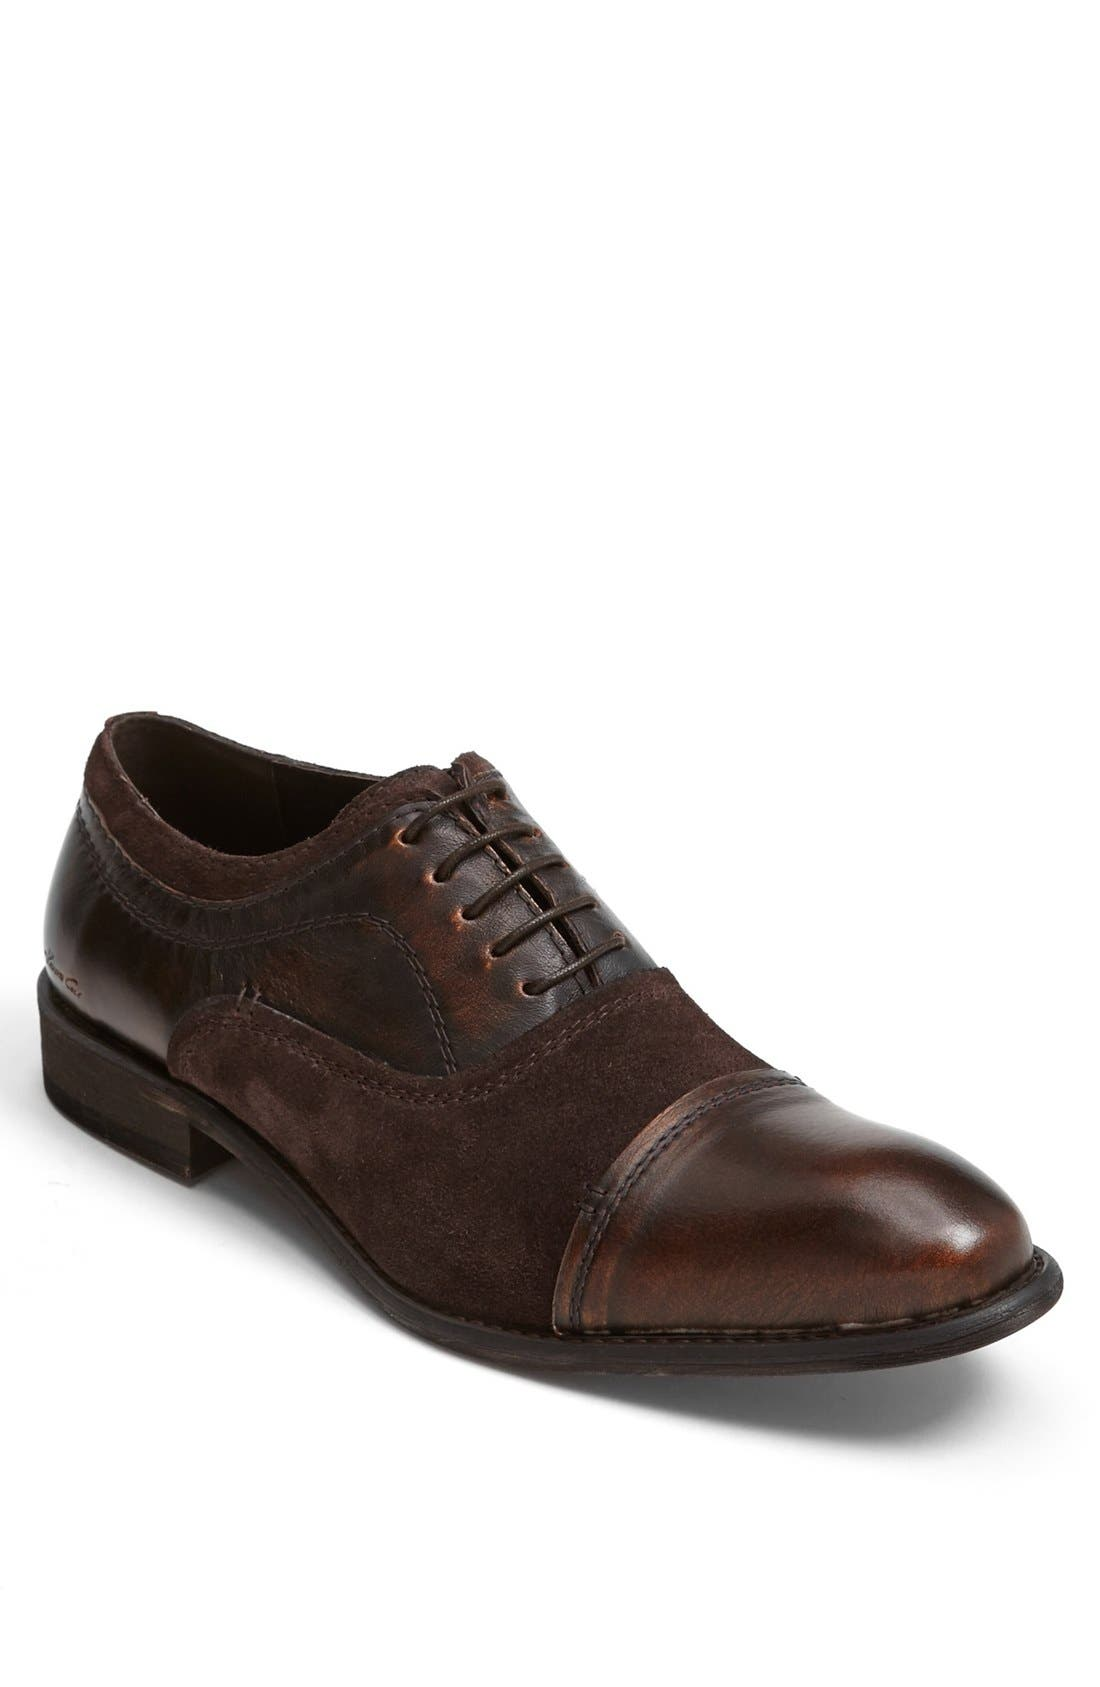 Main Image - Kenneth Cole New York 'Wishing Star' Cap Toe Oxford